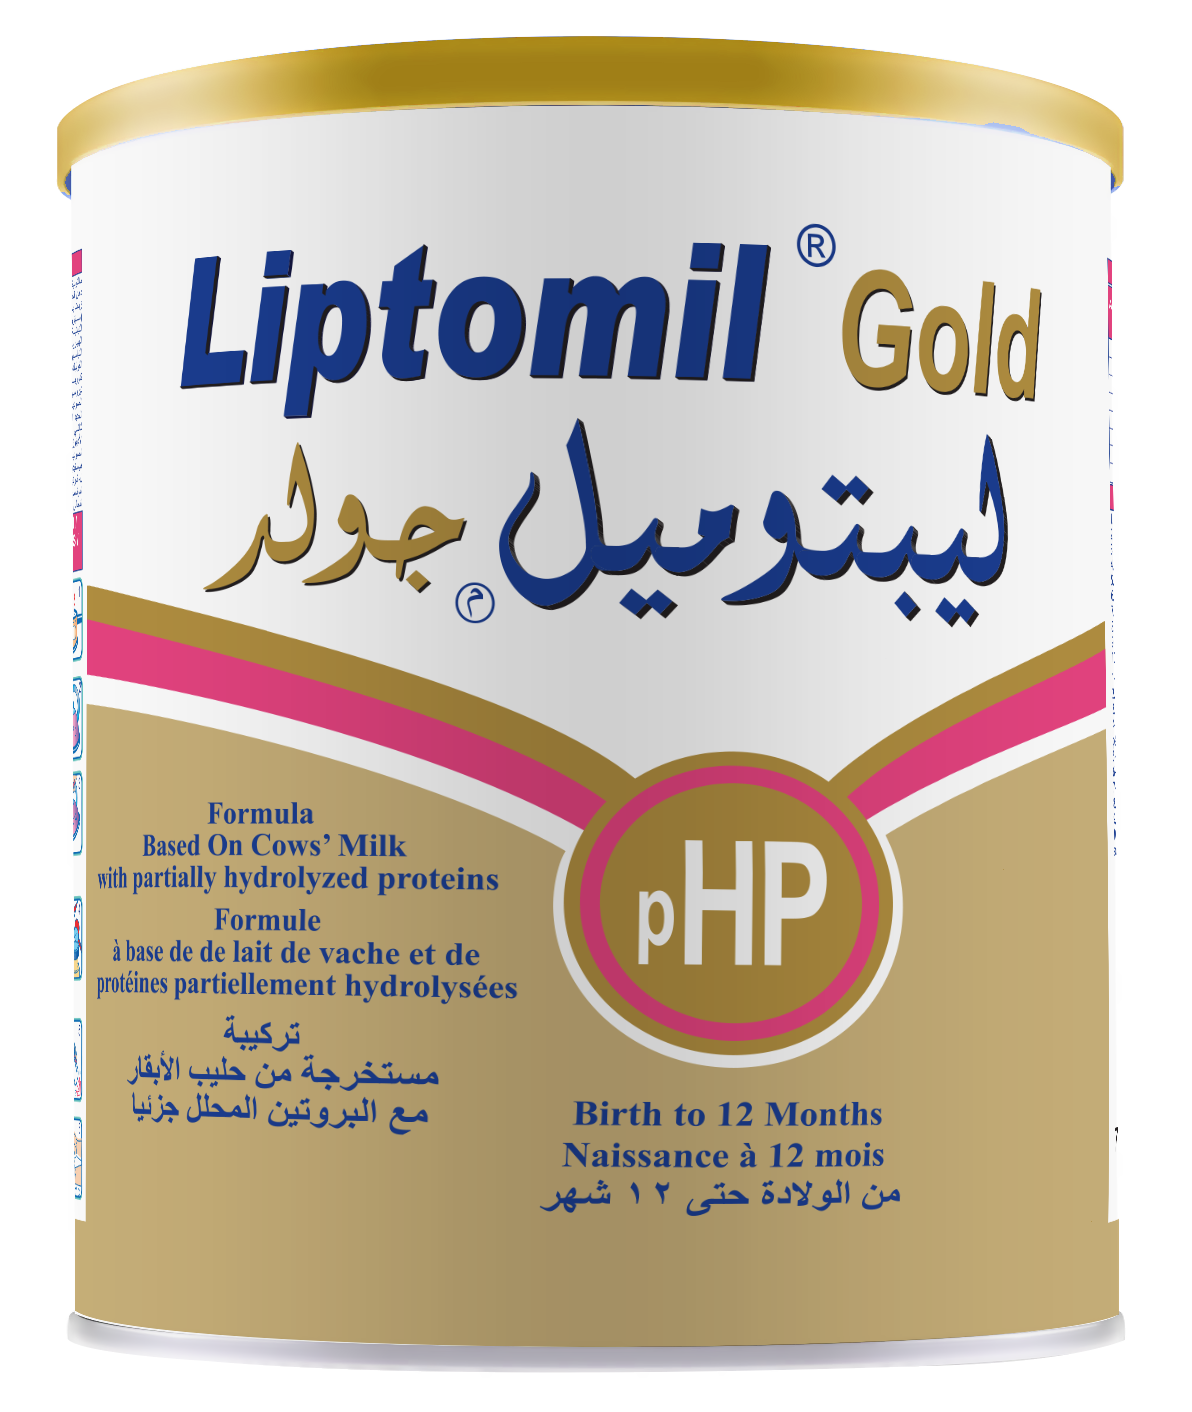 Liptomil Gold pHP